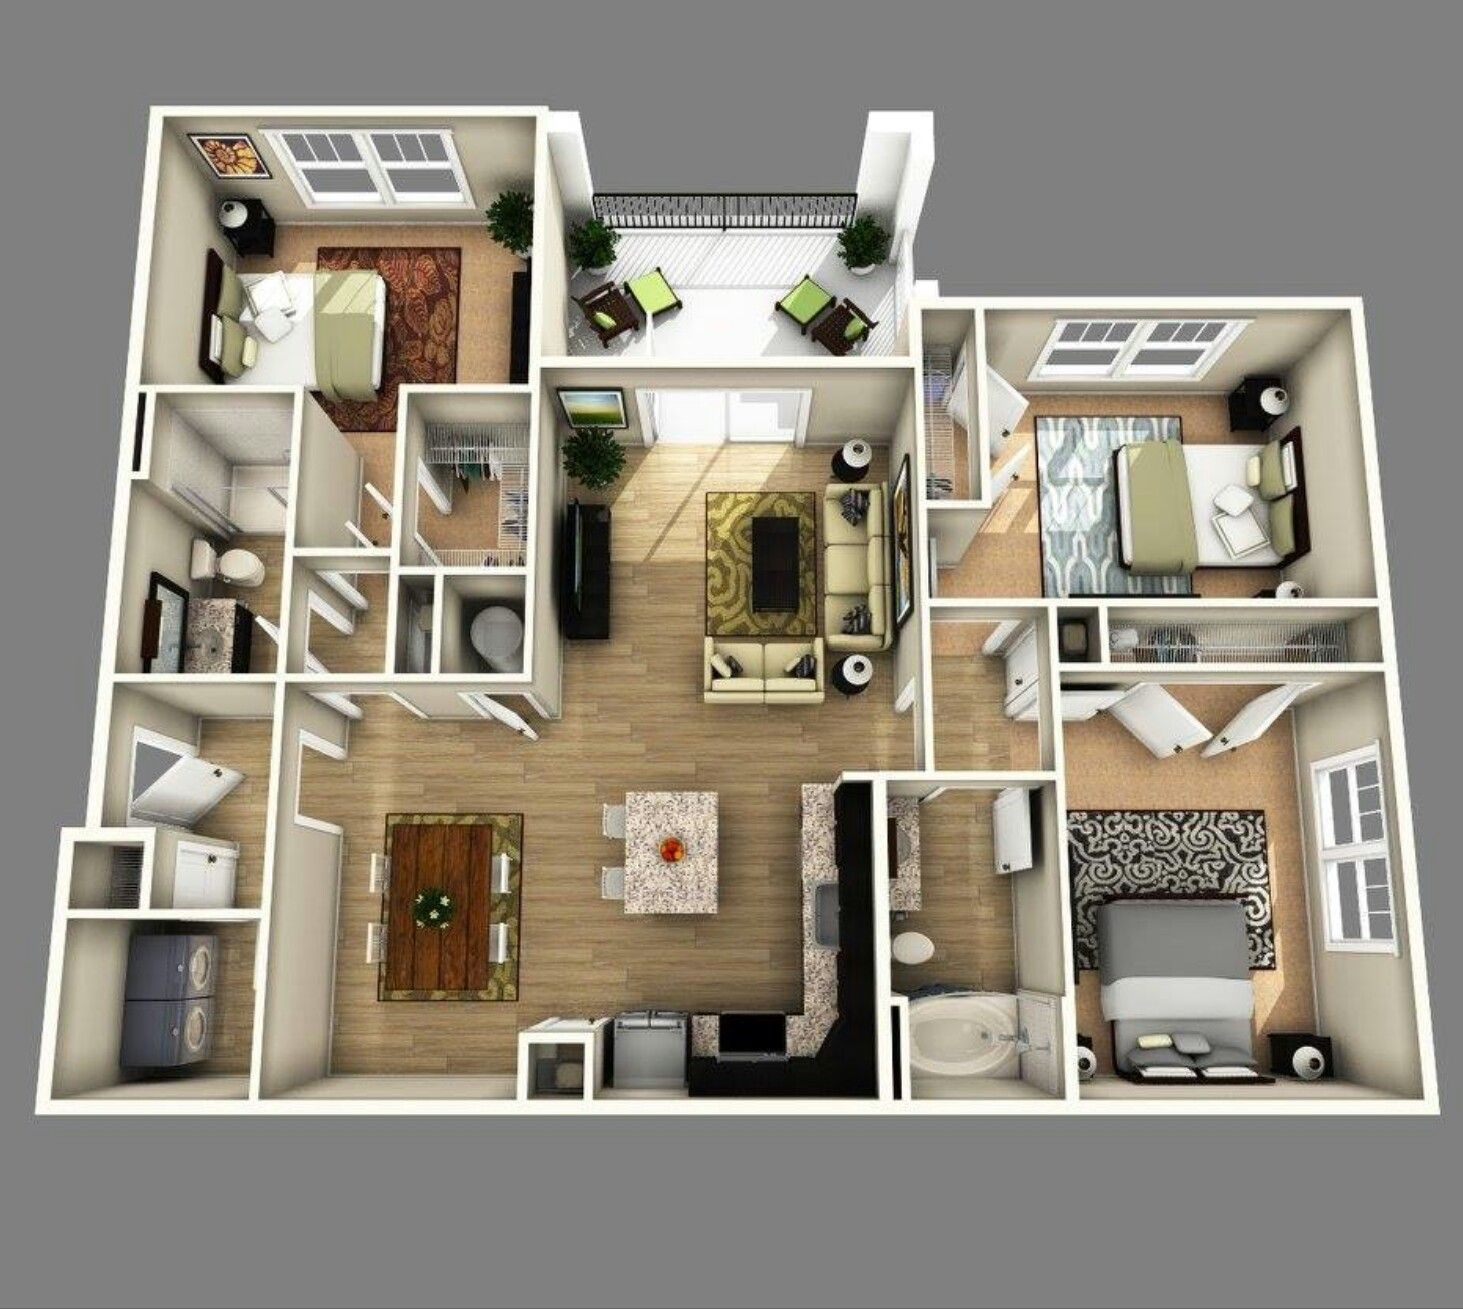 3 To 4 Bedroom Apartments Near Me: Apartment Floor Plans, 3d House Plans